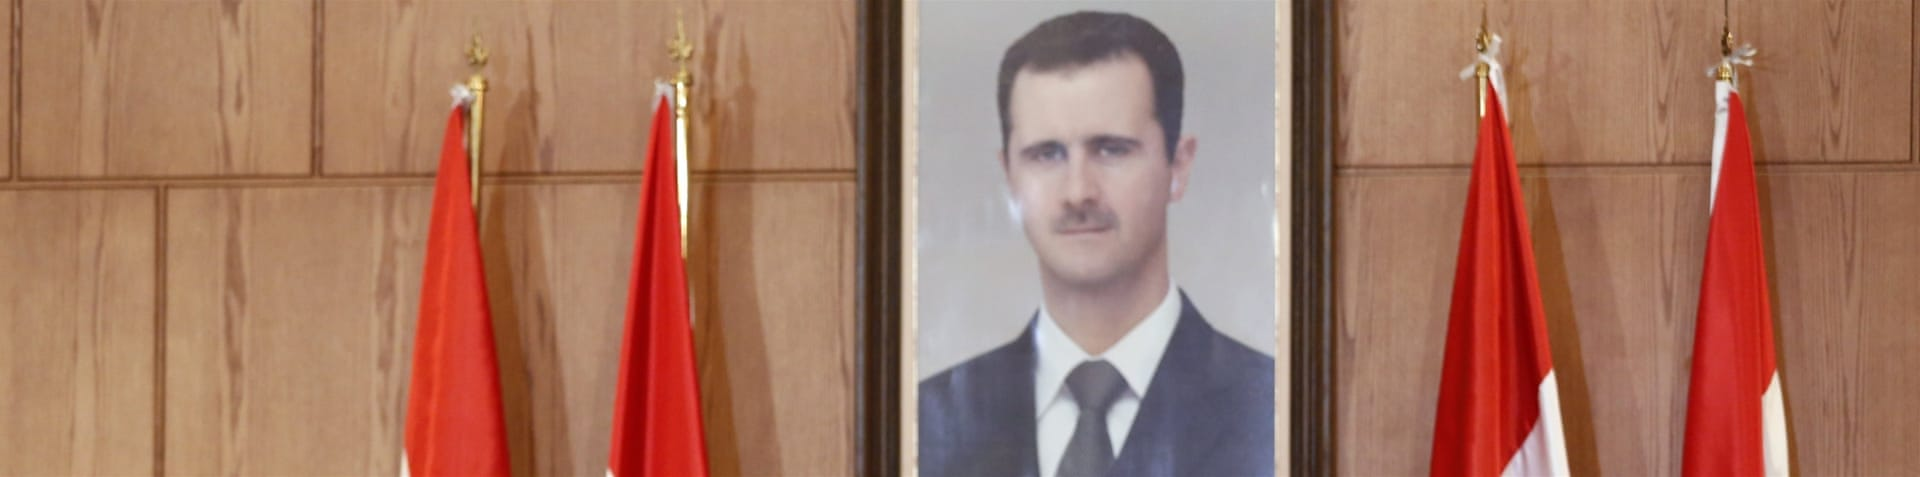 Iran and Russia are Assad's closest allies [EPA]